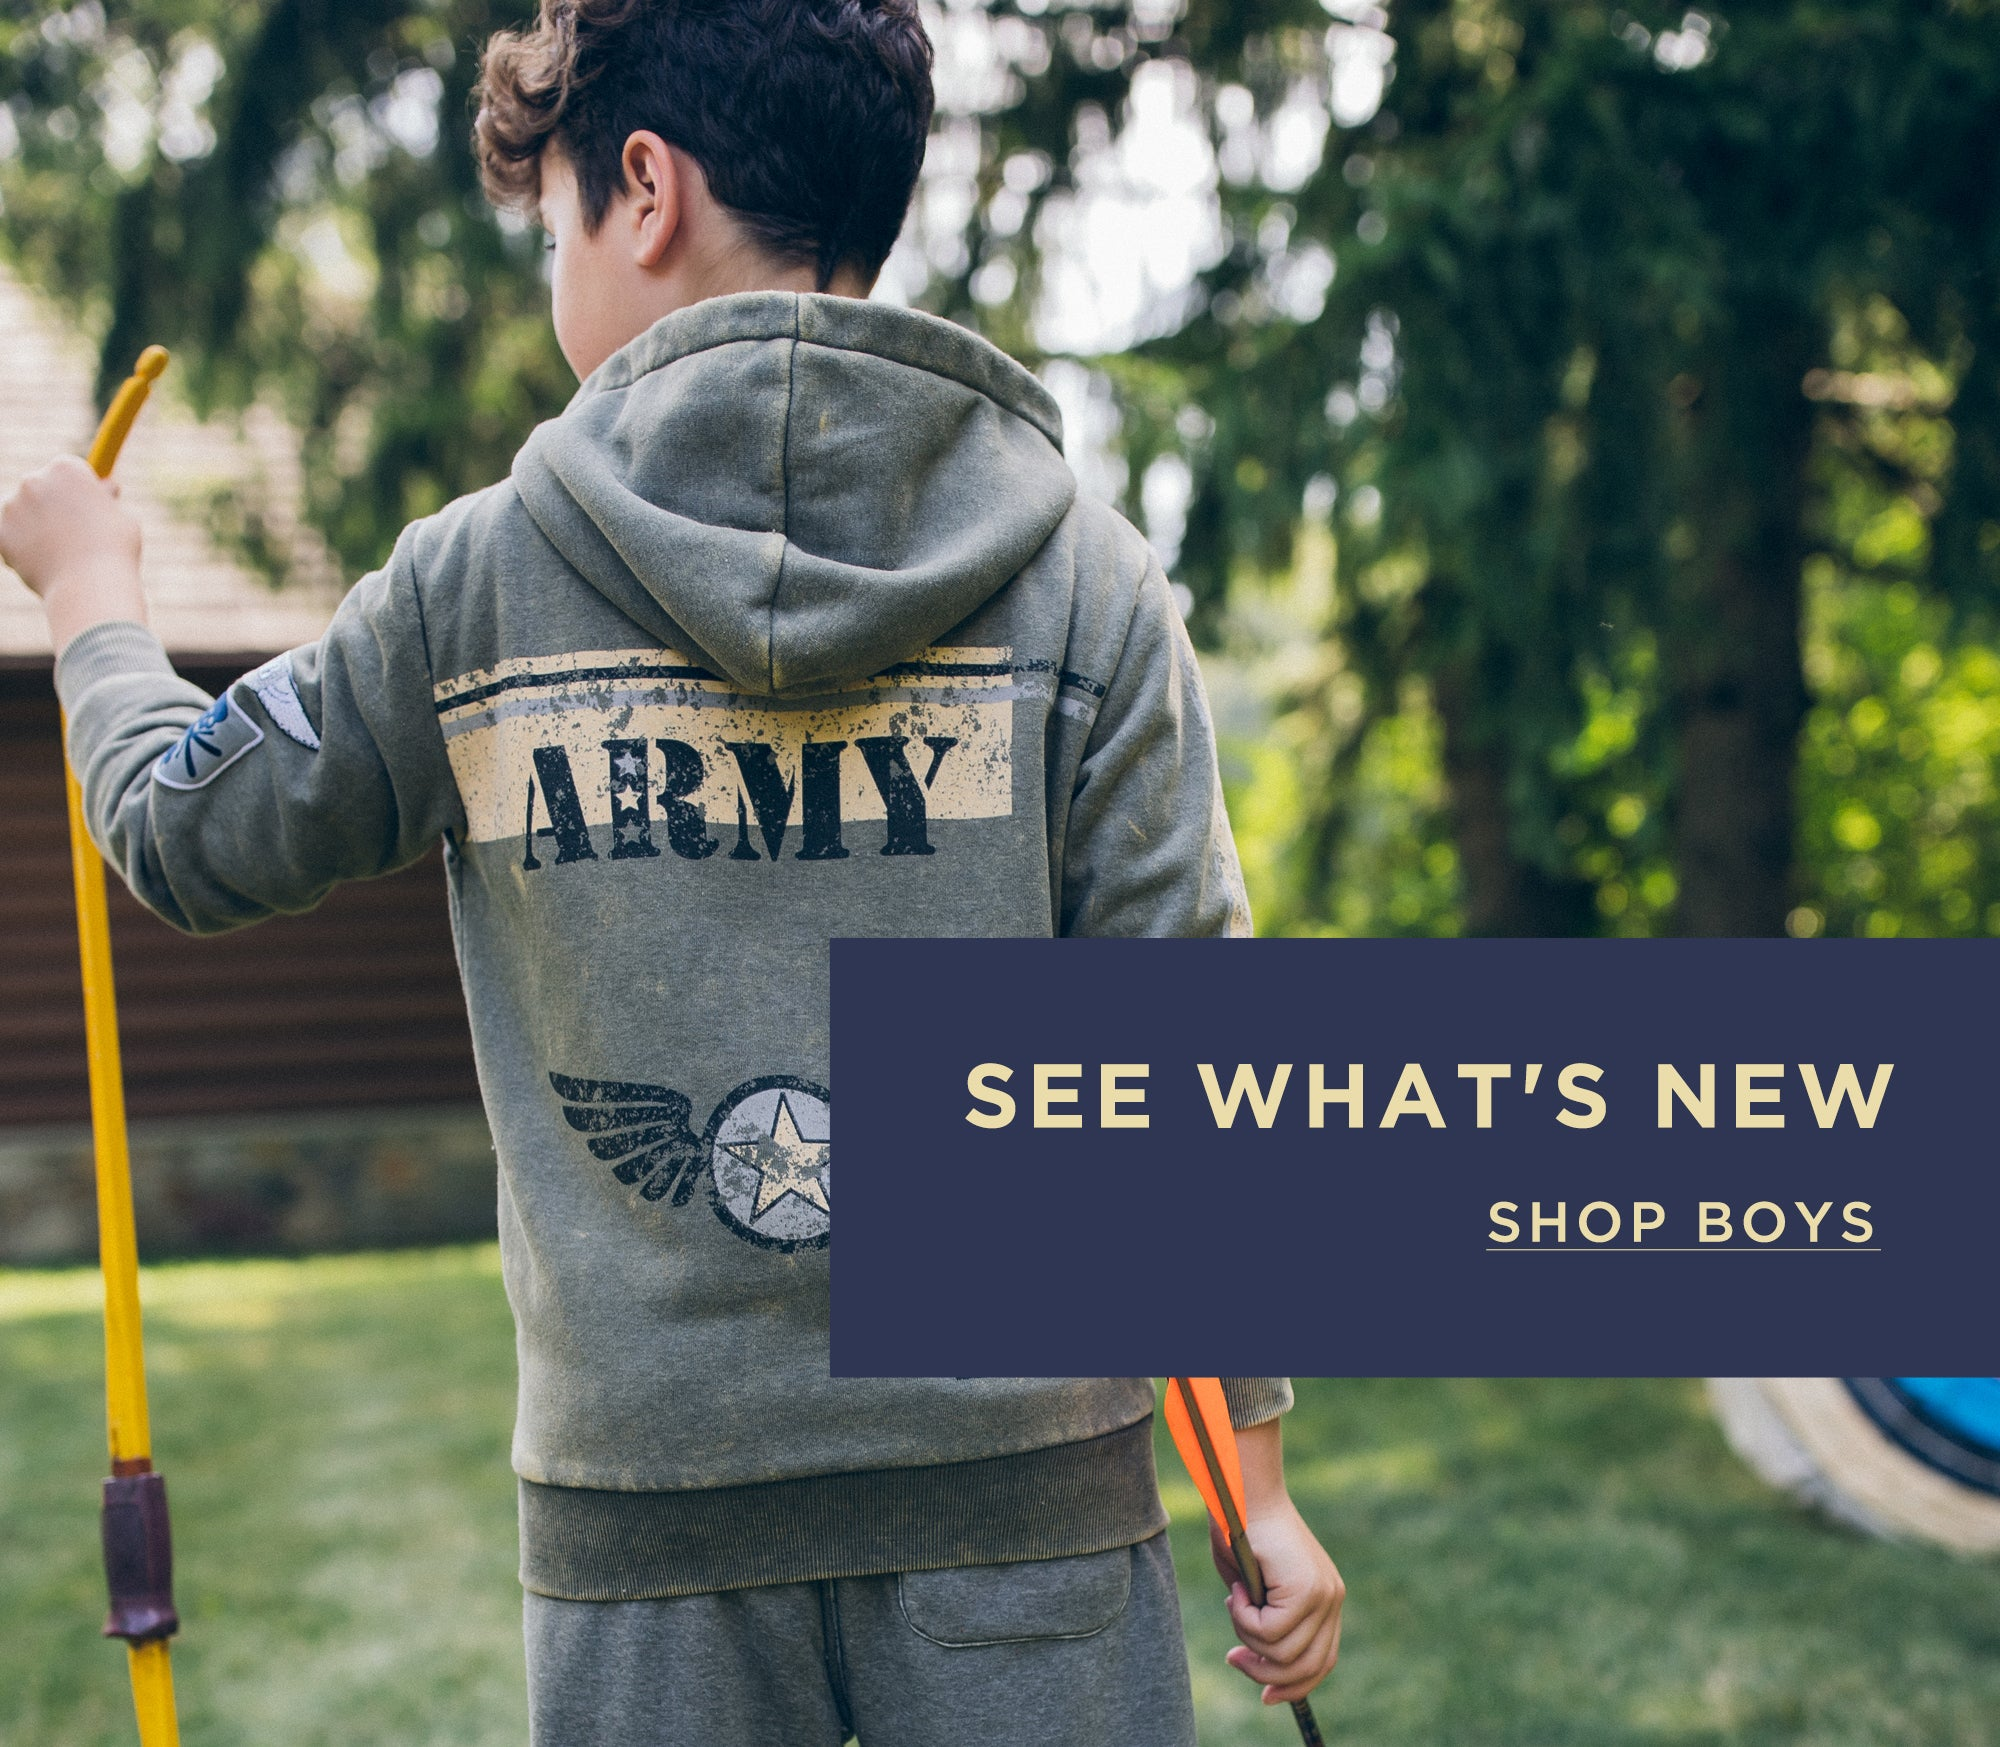 New Styles for Boys - Shop Now